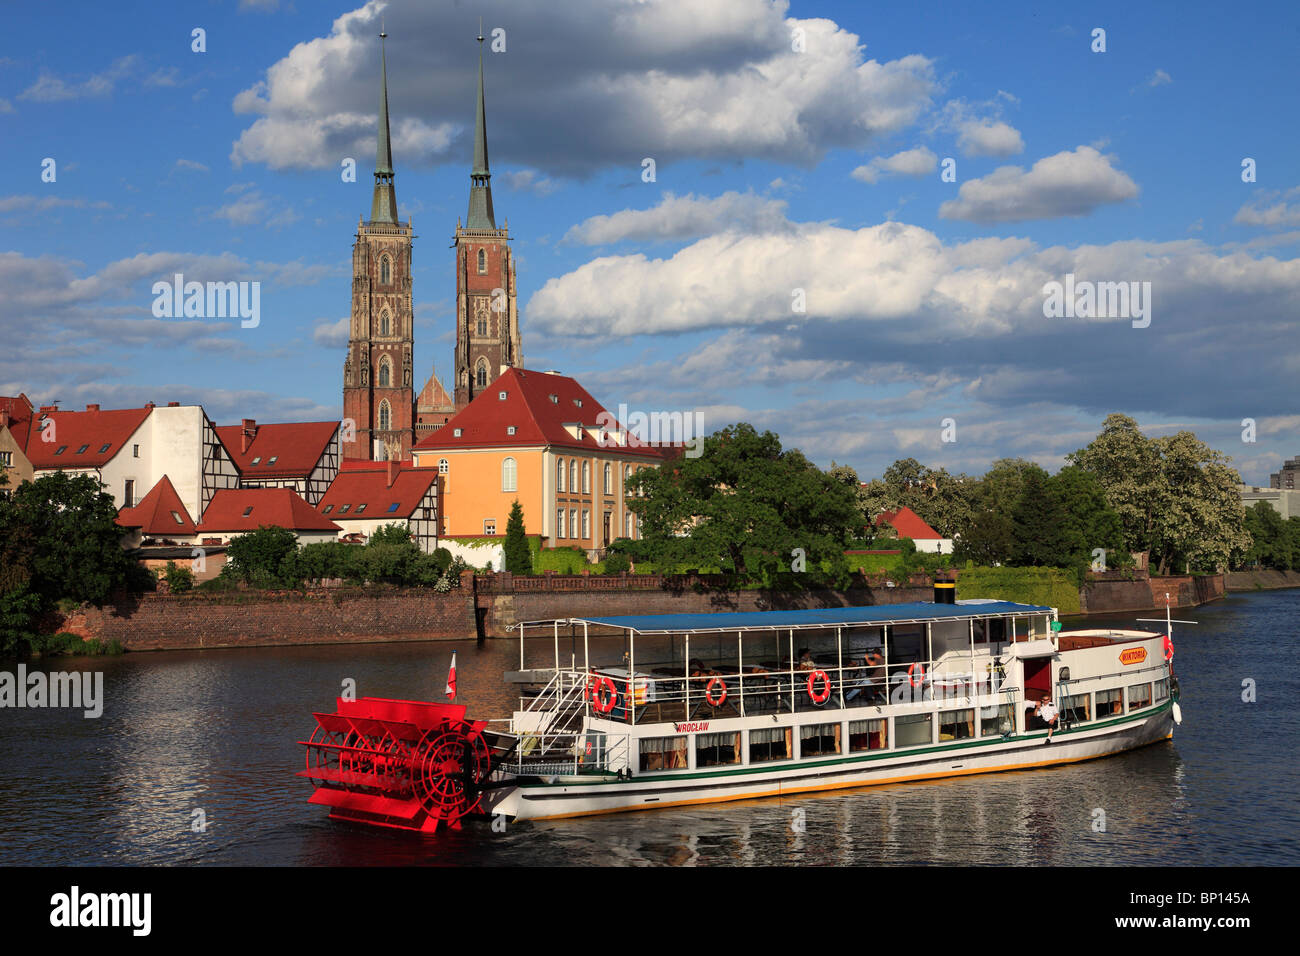 Poland, Wroclaw, Cathedral Island, Odra River, sightseeing boat - Stock Image